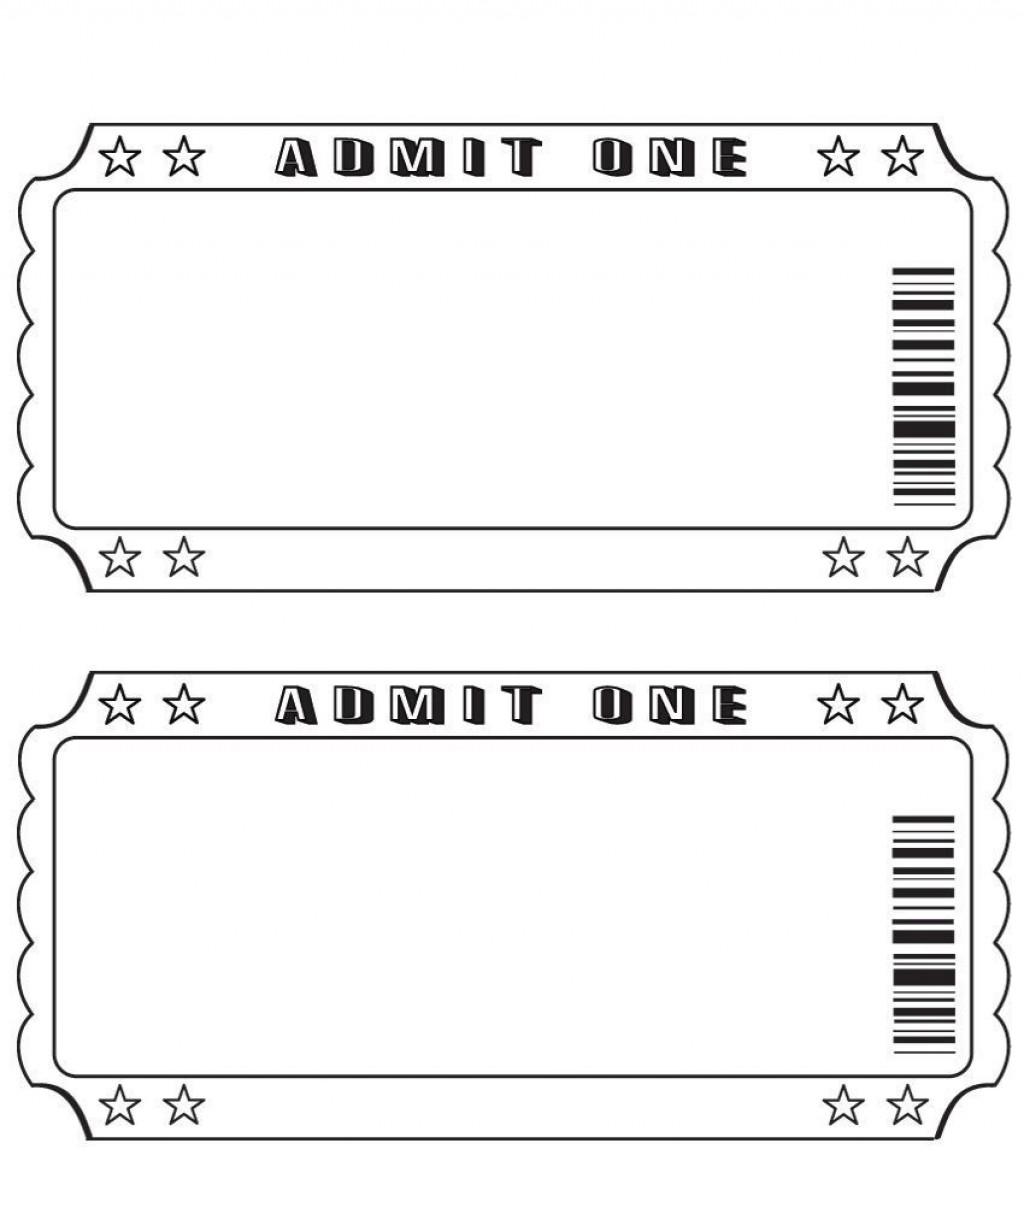 002 Awful Free Event Ticket Template Printable High Definition Large